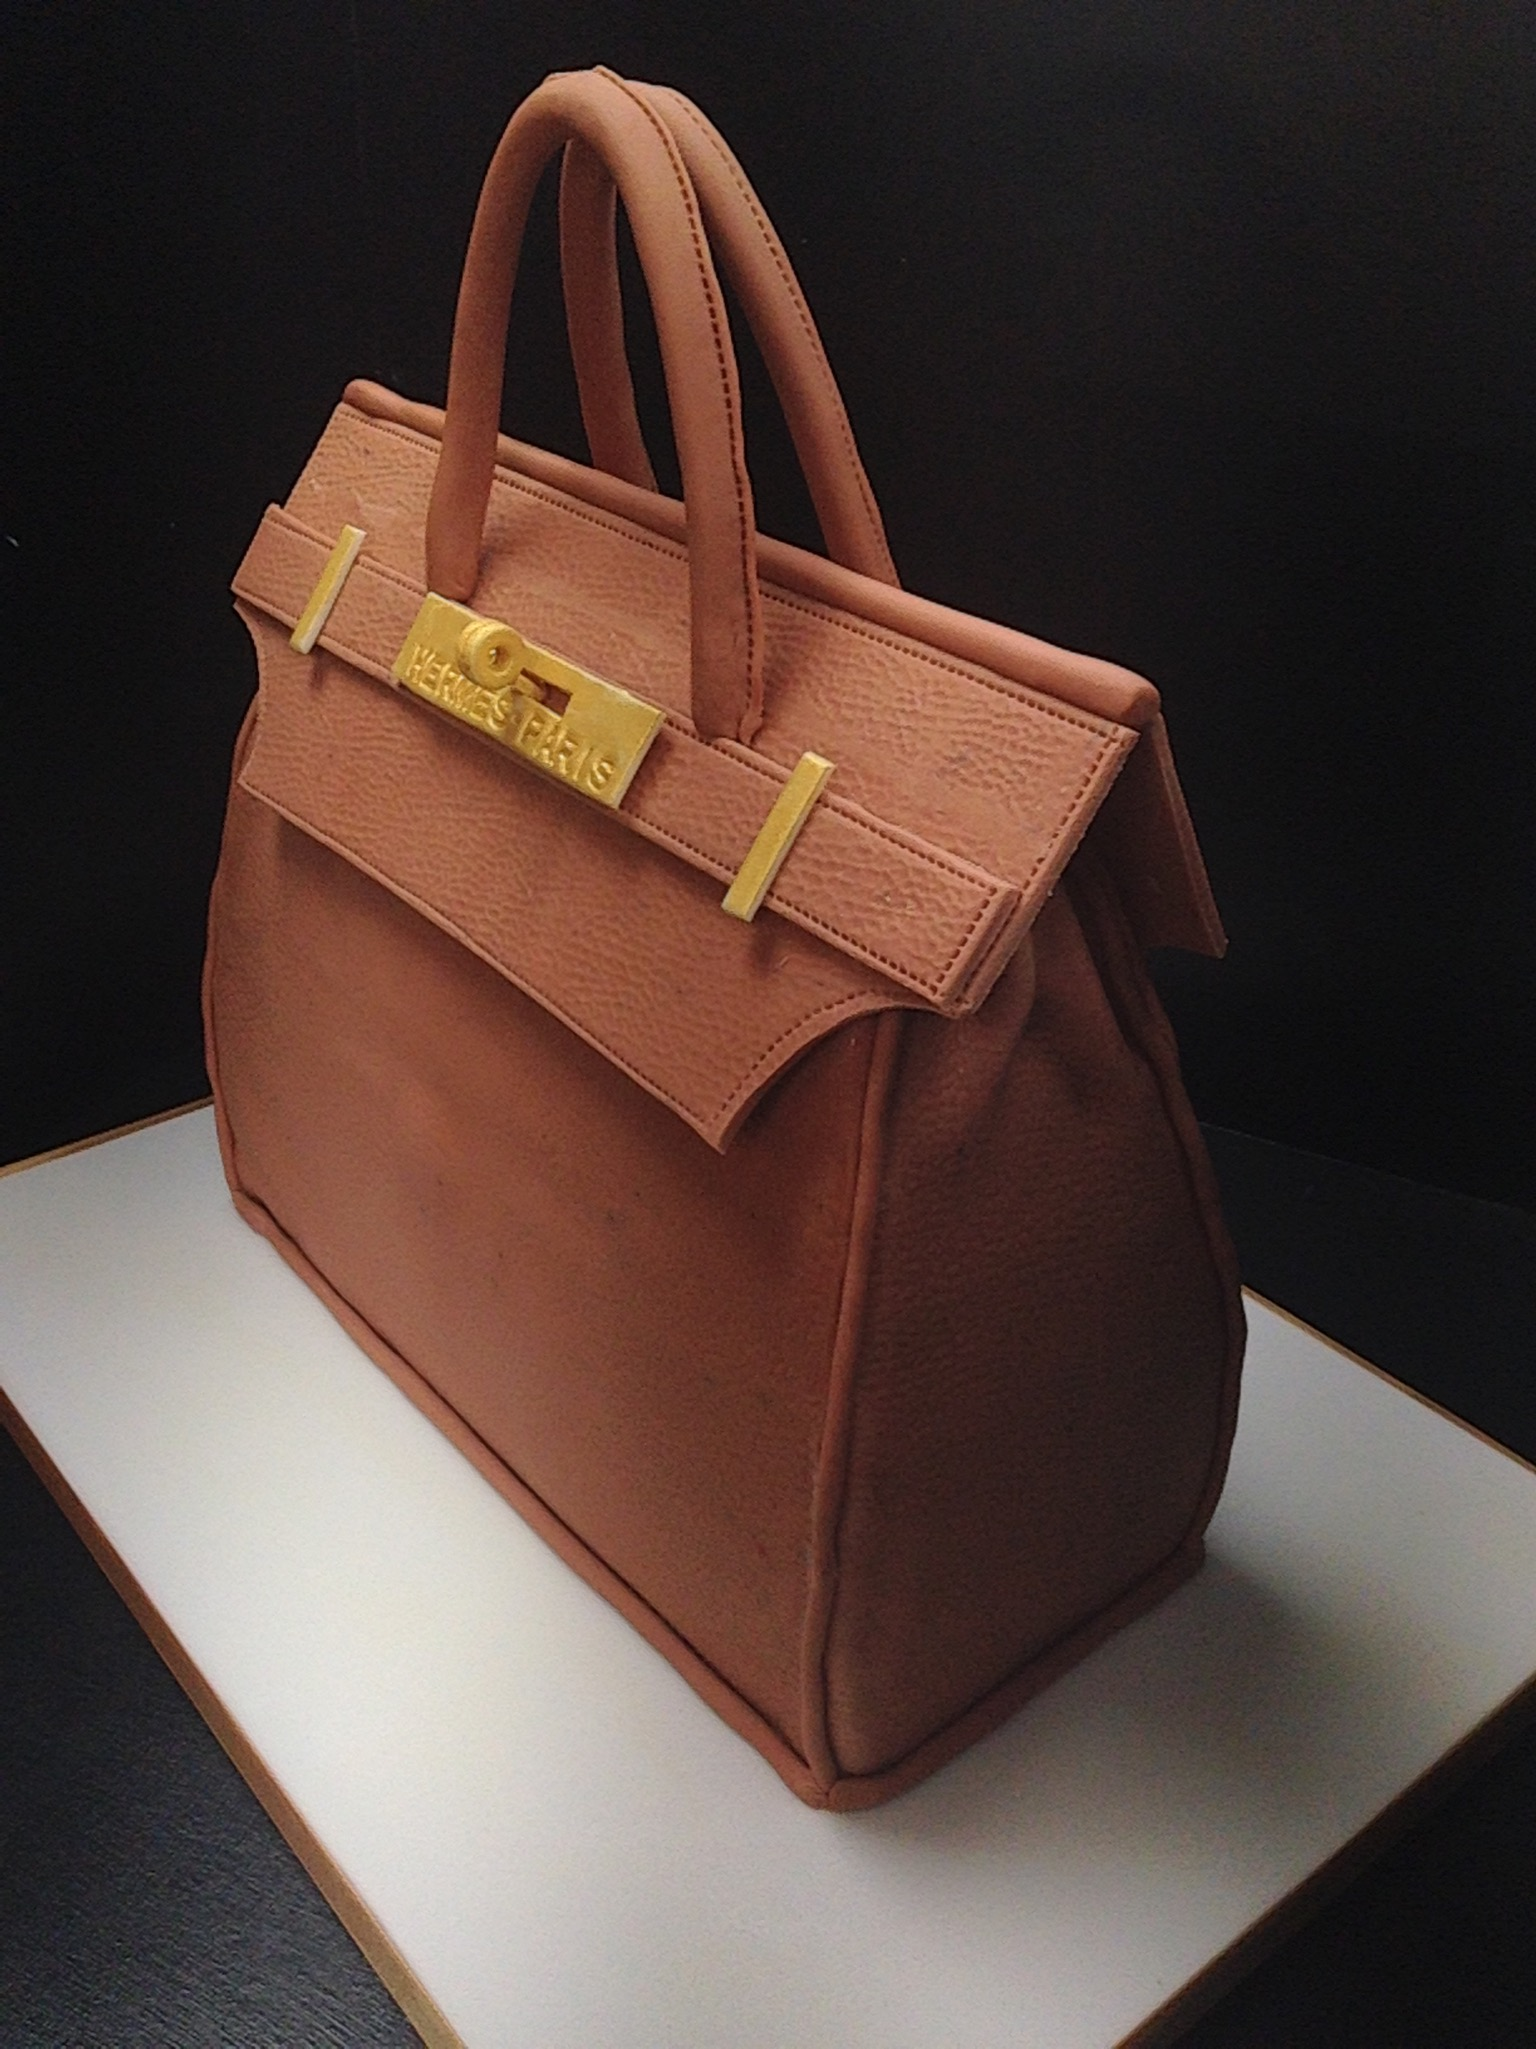 A special 'Hermes' handbag. Chocolate sponge layered with chocolate ganache and buttercream.